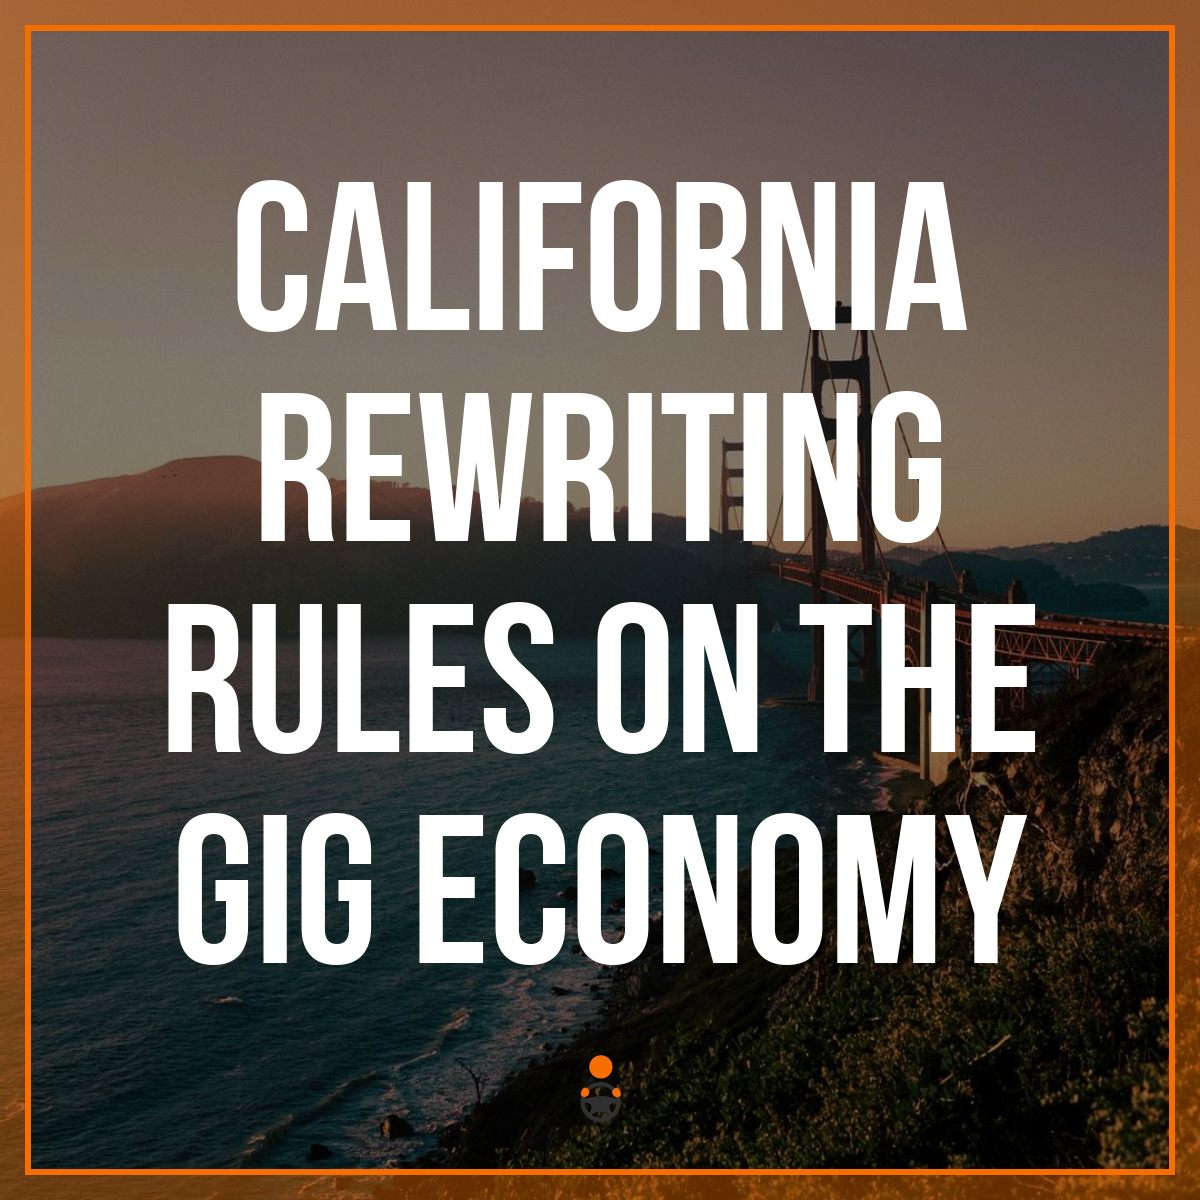 California Rewriting Rules on the Gig Economy